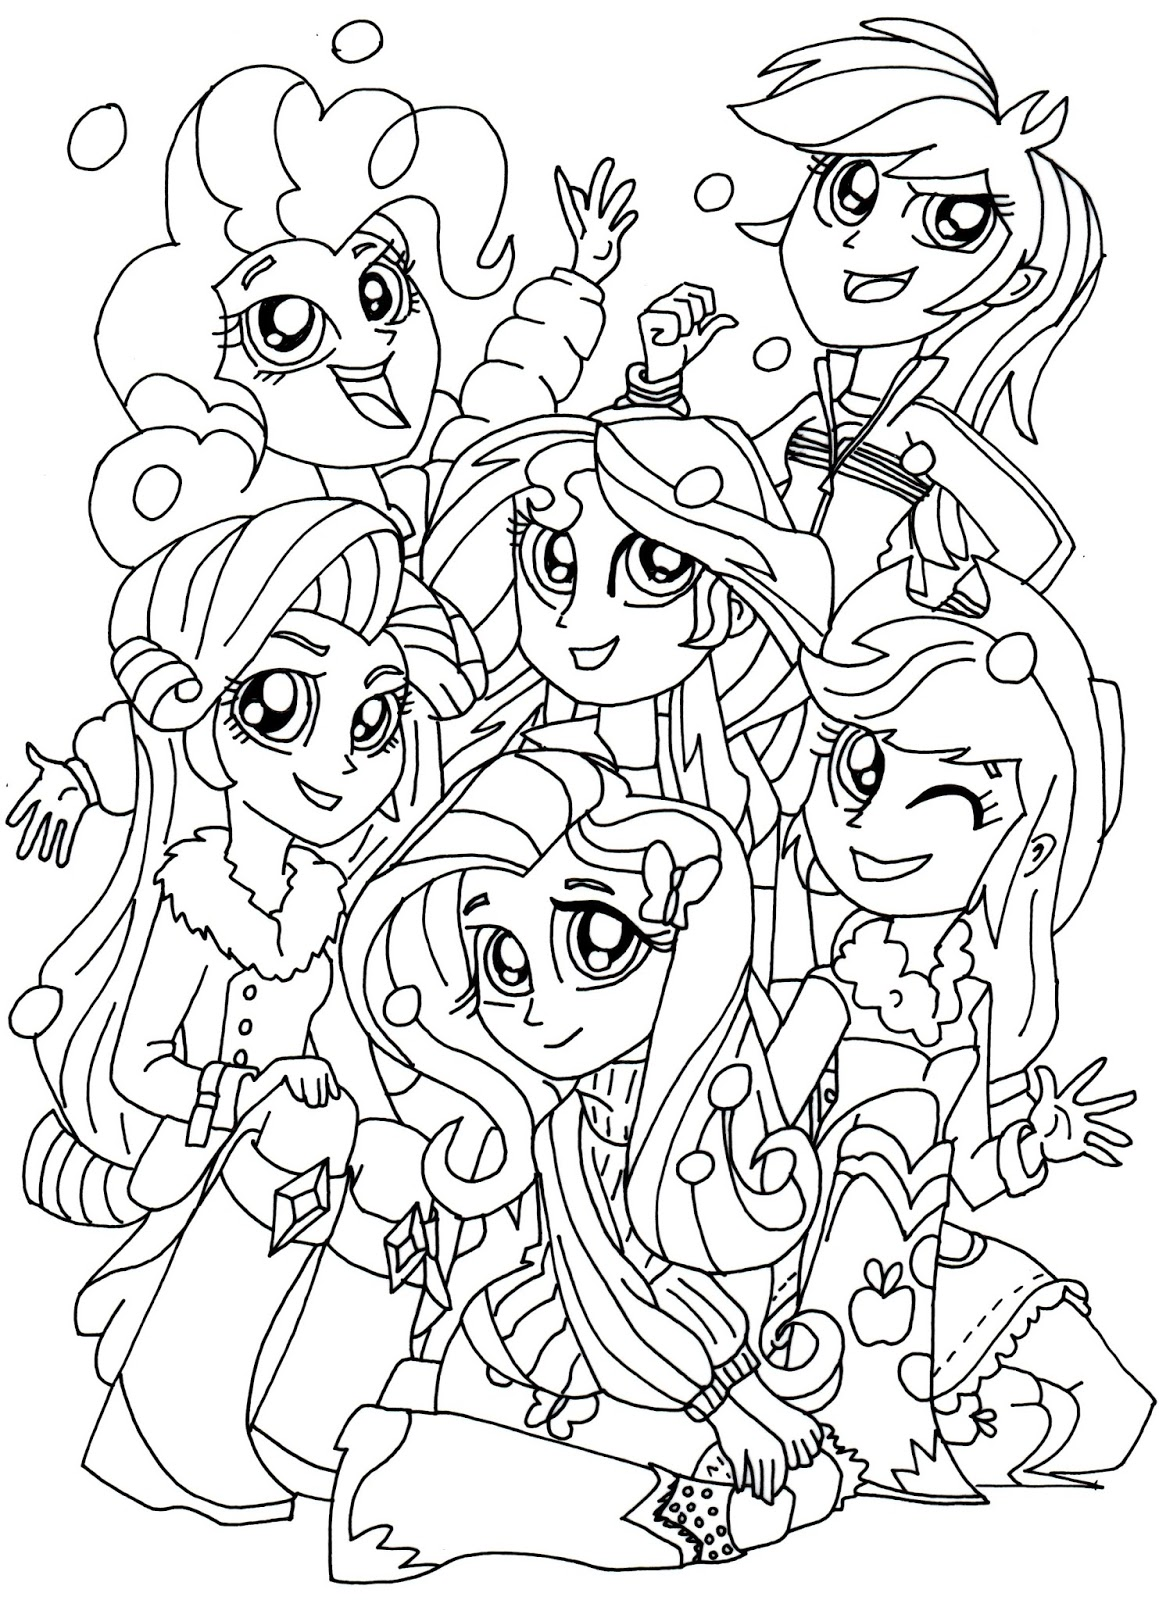 My Little Pony Equestria Girls Sunset Shimmer Coloring Page Free Equestria Coloring Pages